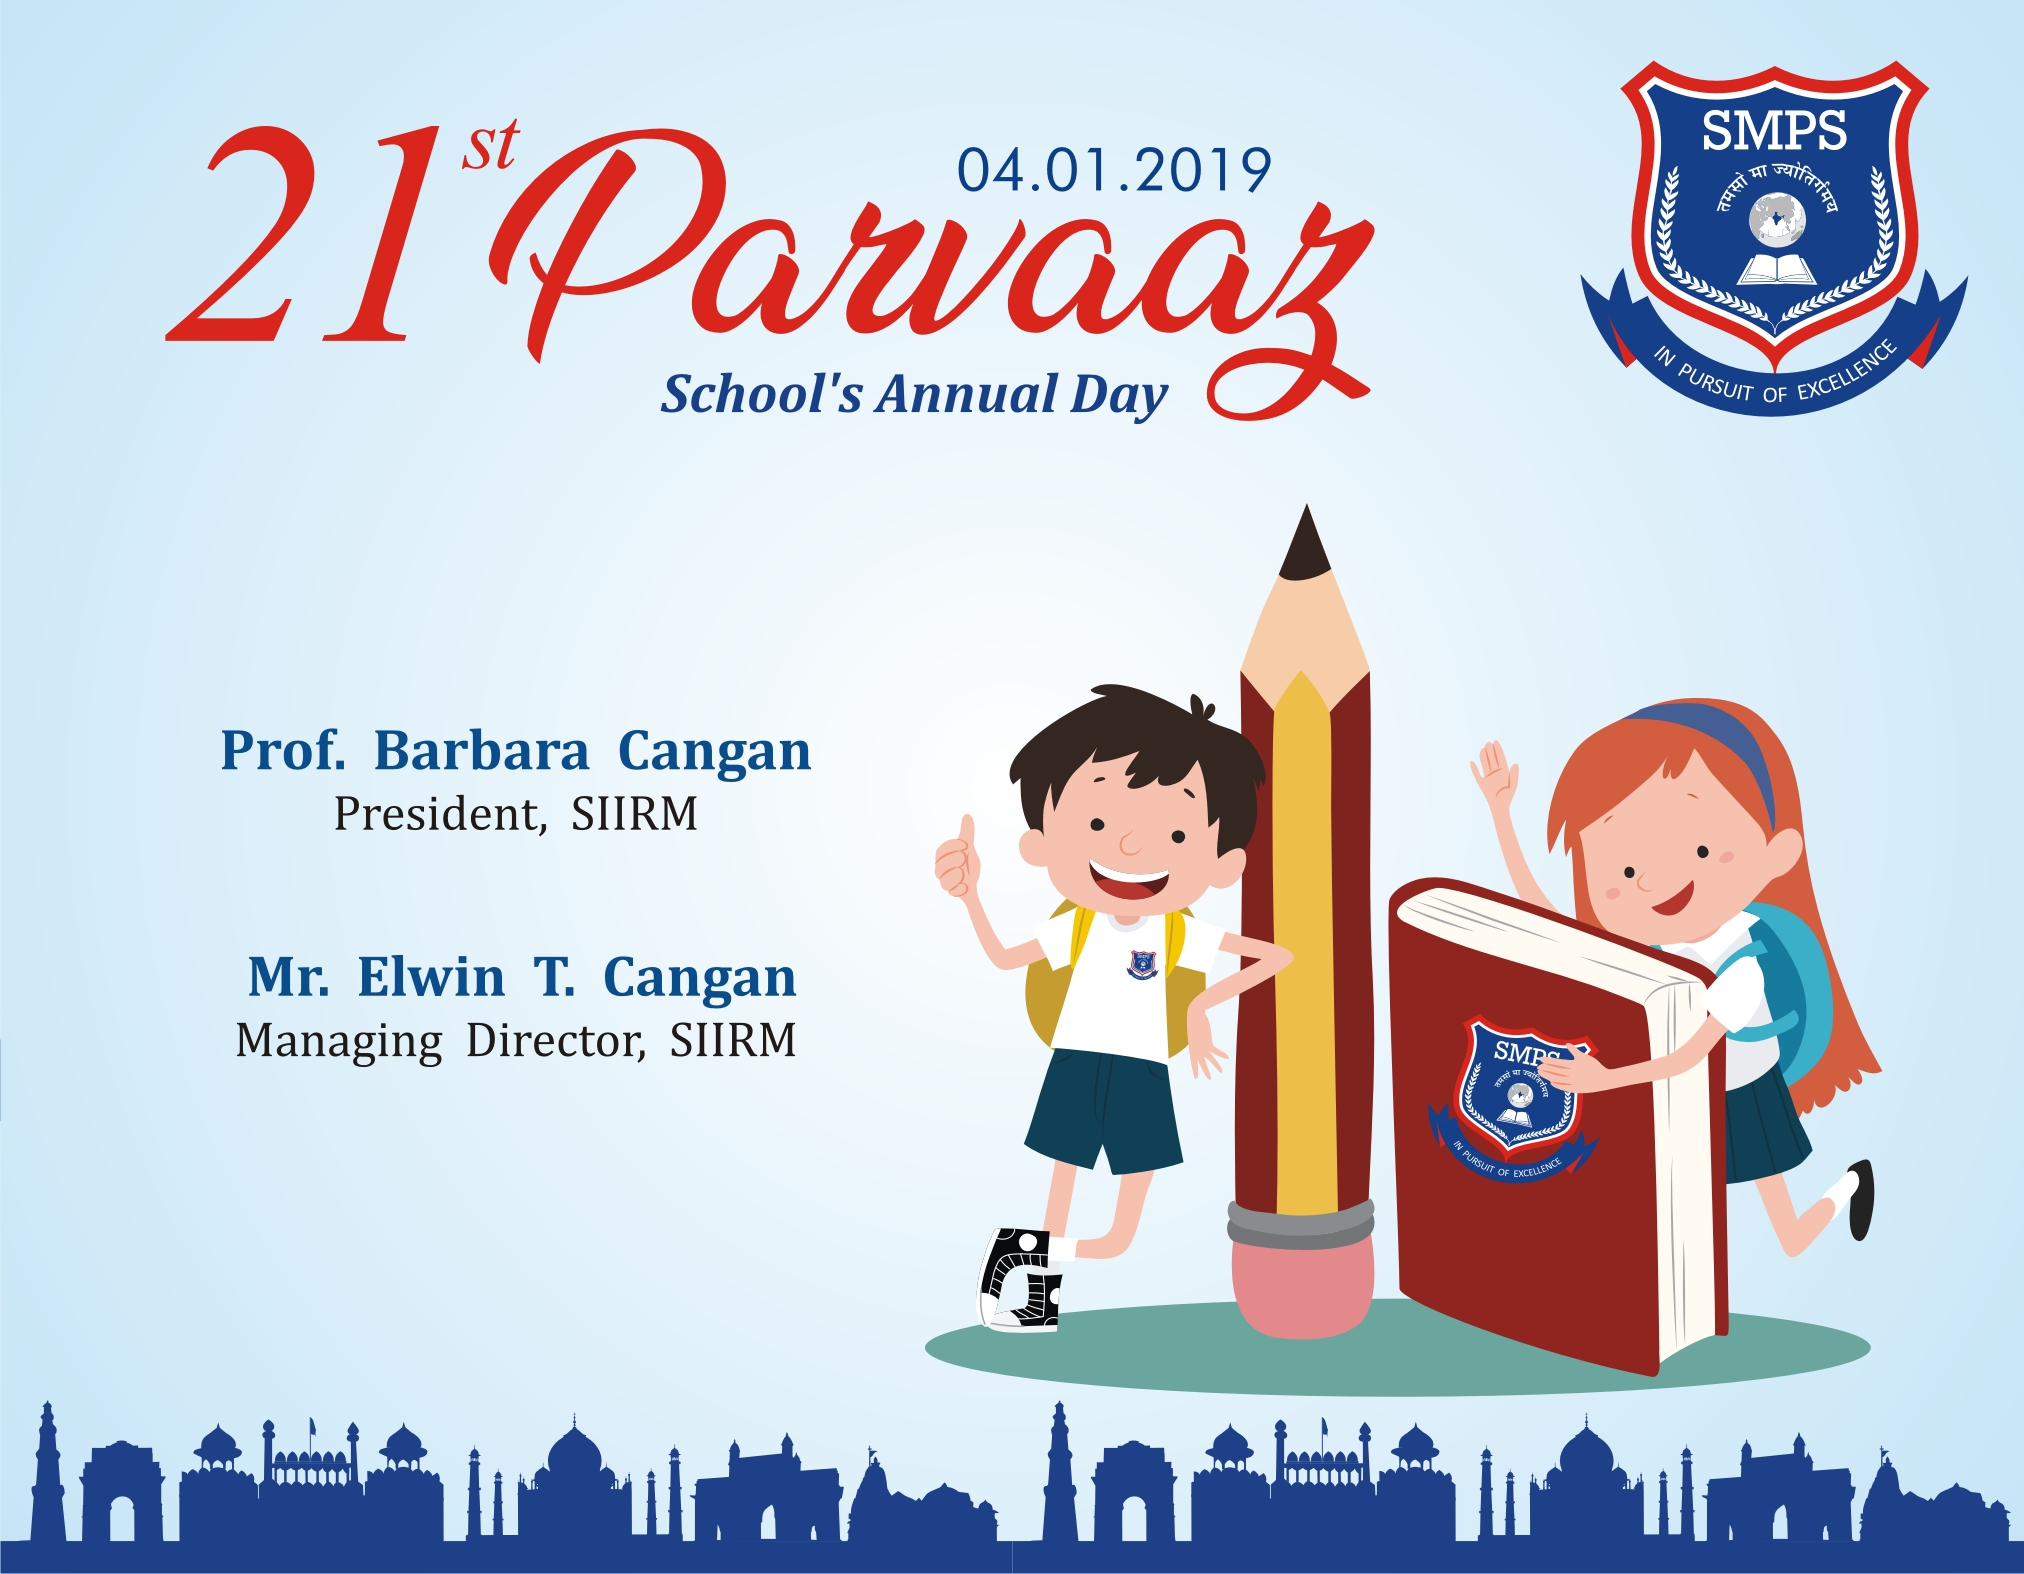 PARVAAZ 2019 - Annual Day @SMPS